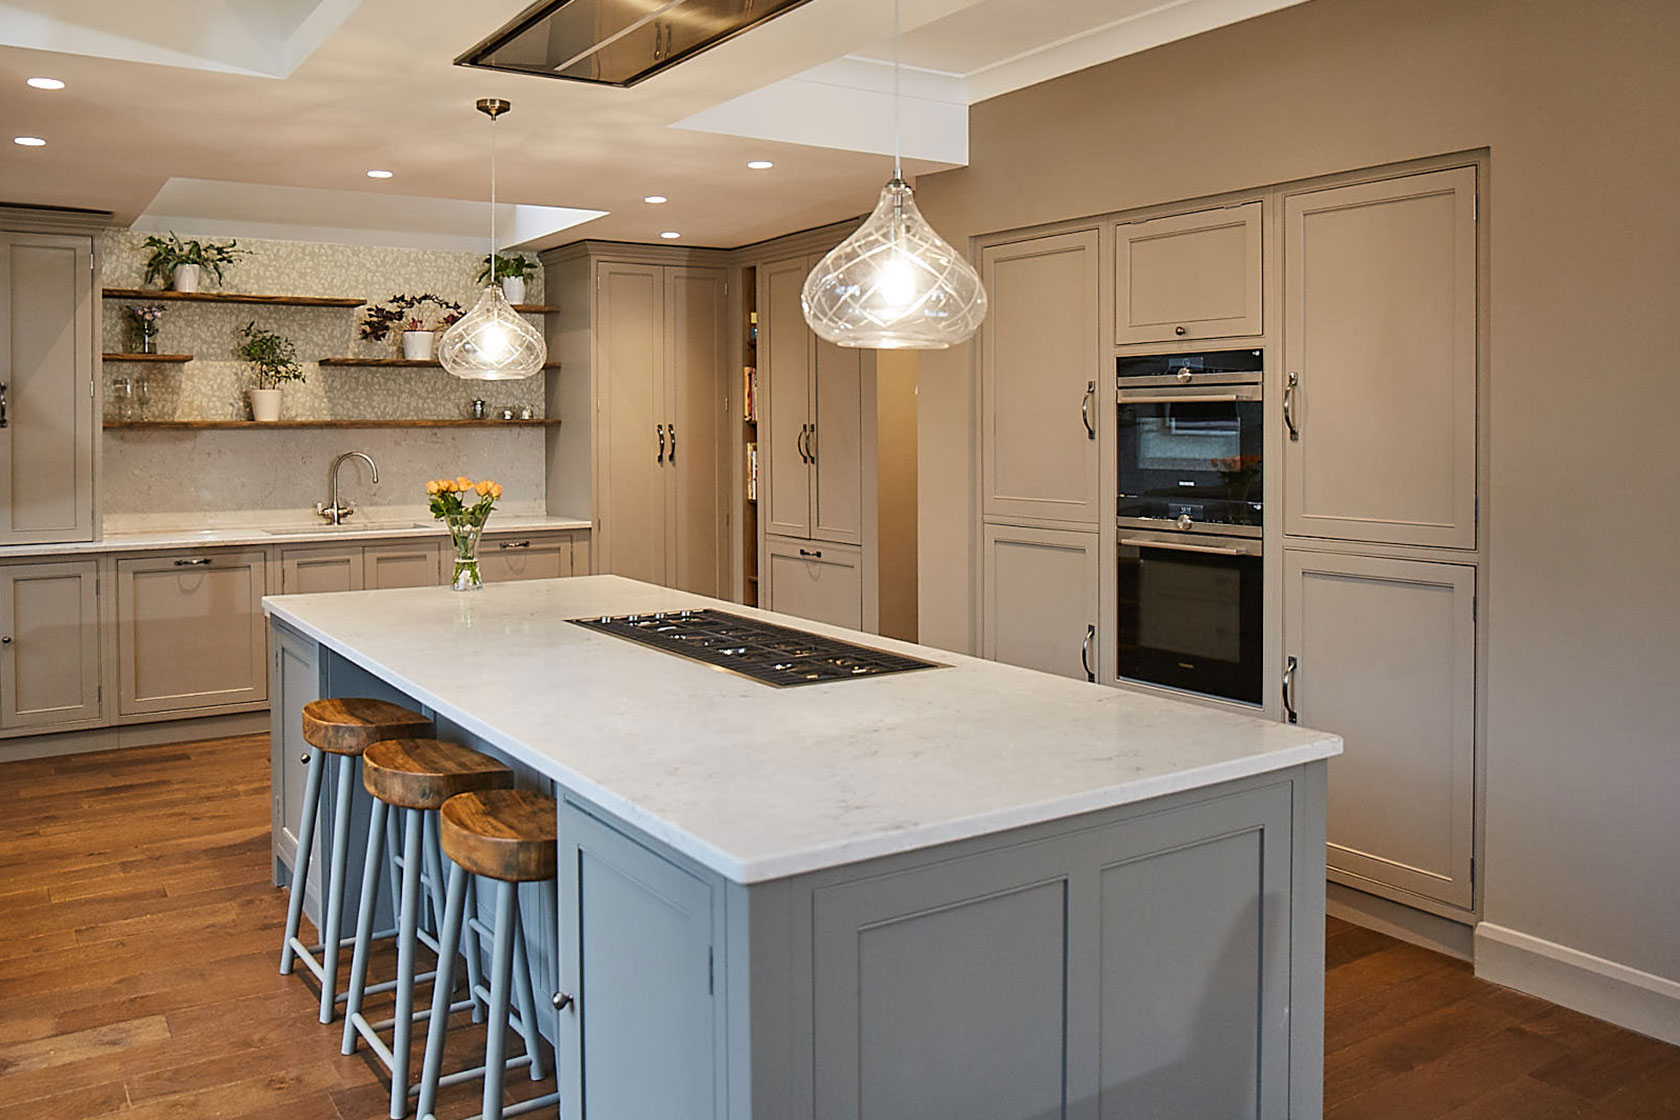 Crystal pendant lights above traditional painted kitchen island with white quartz worktop